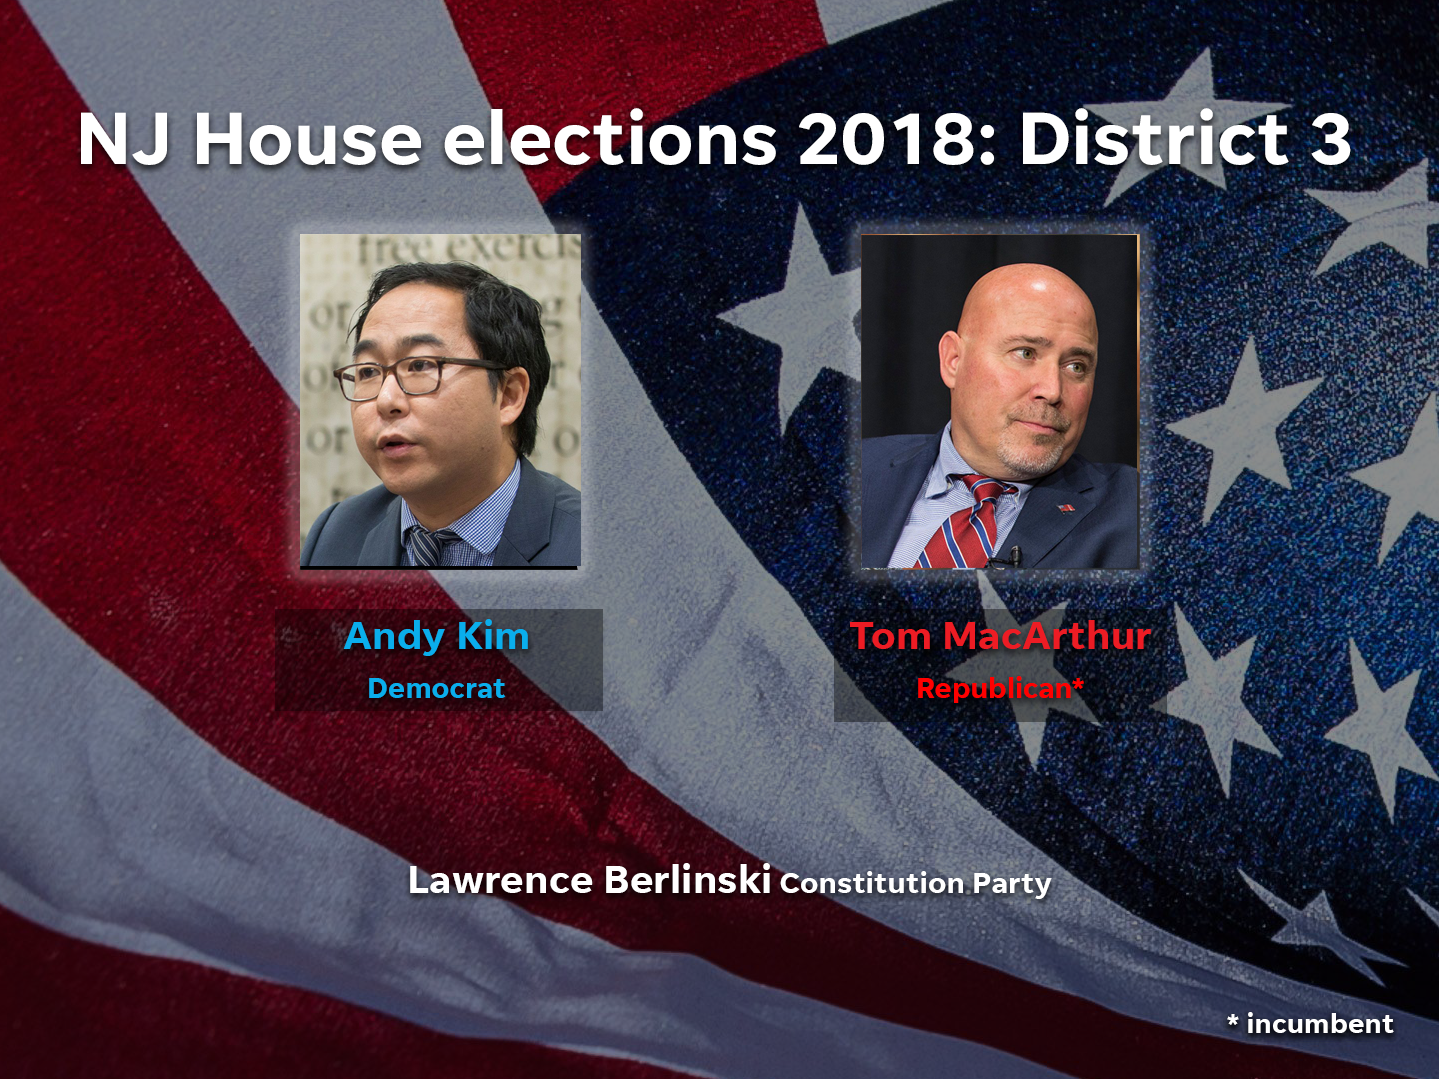 Andy Kim (D) and Tom MacArthur (R) are among the candidates running in District 3 in the 2018 NJ House elections.